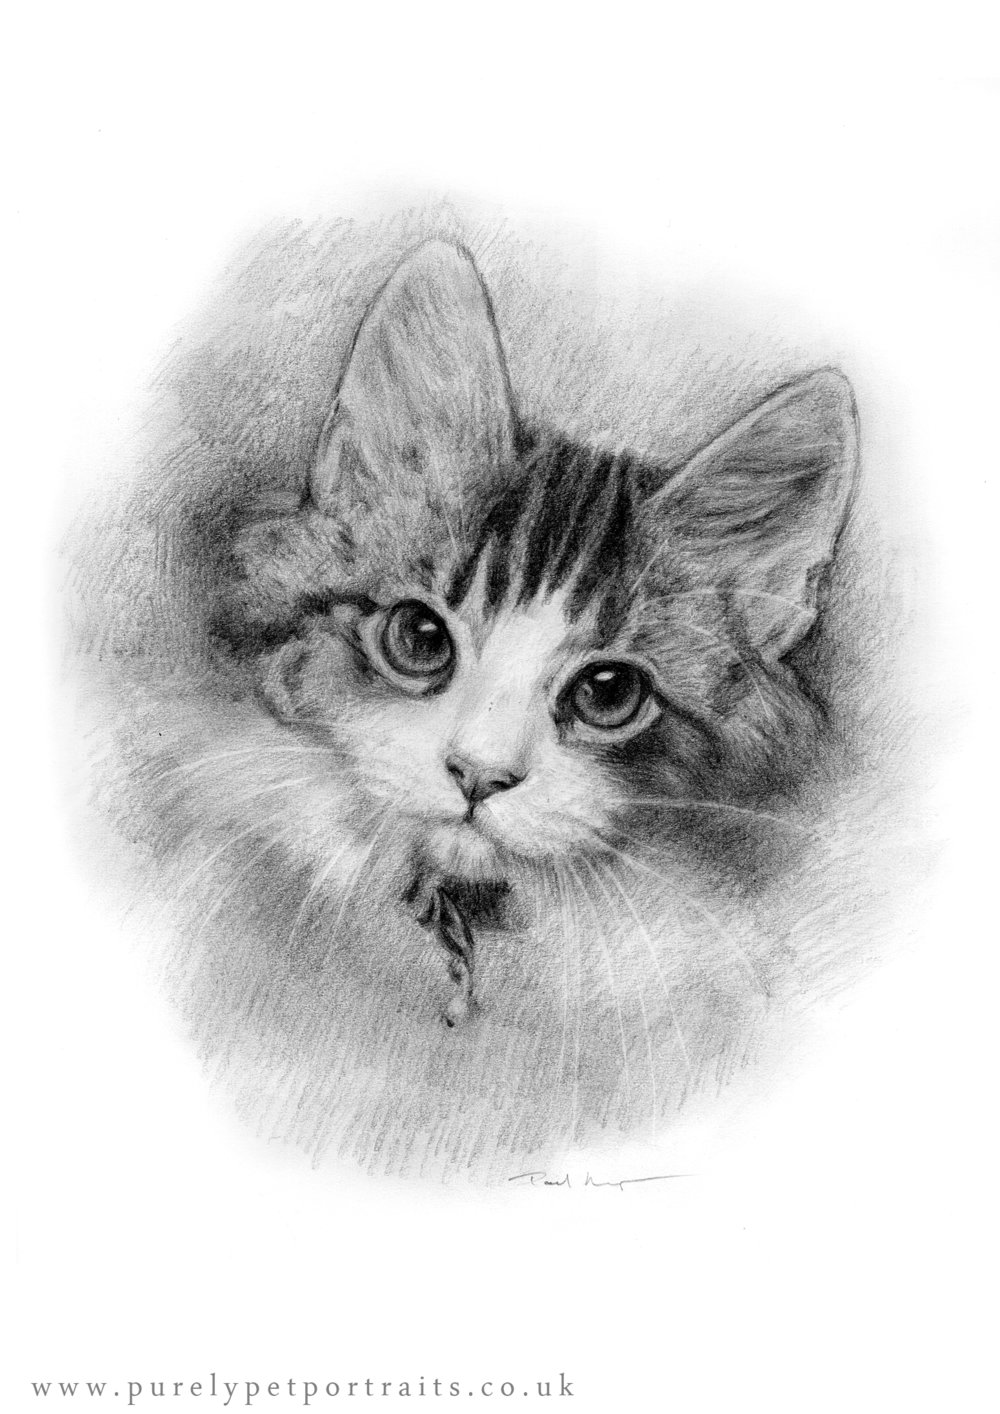 From £120 - for an A5 single portrait